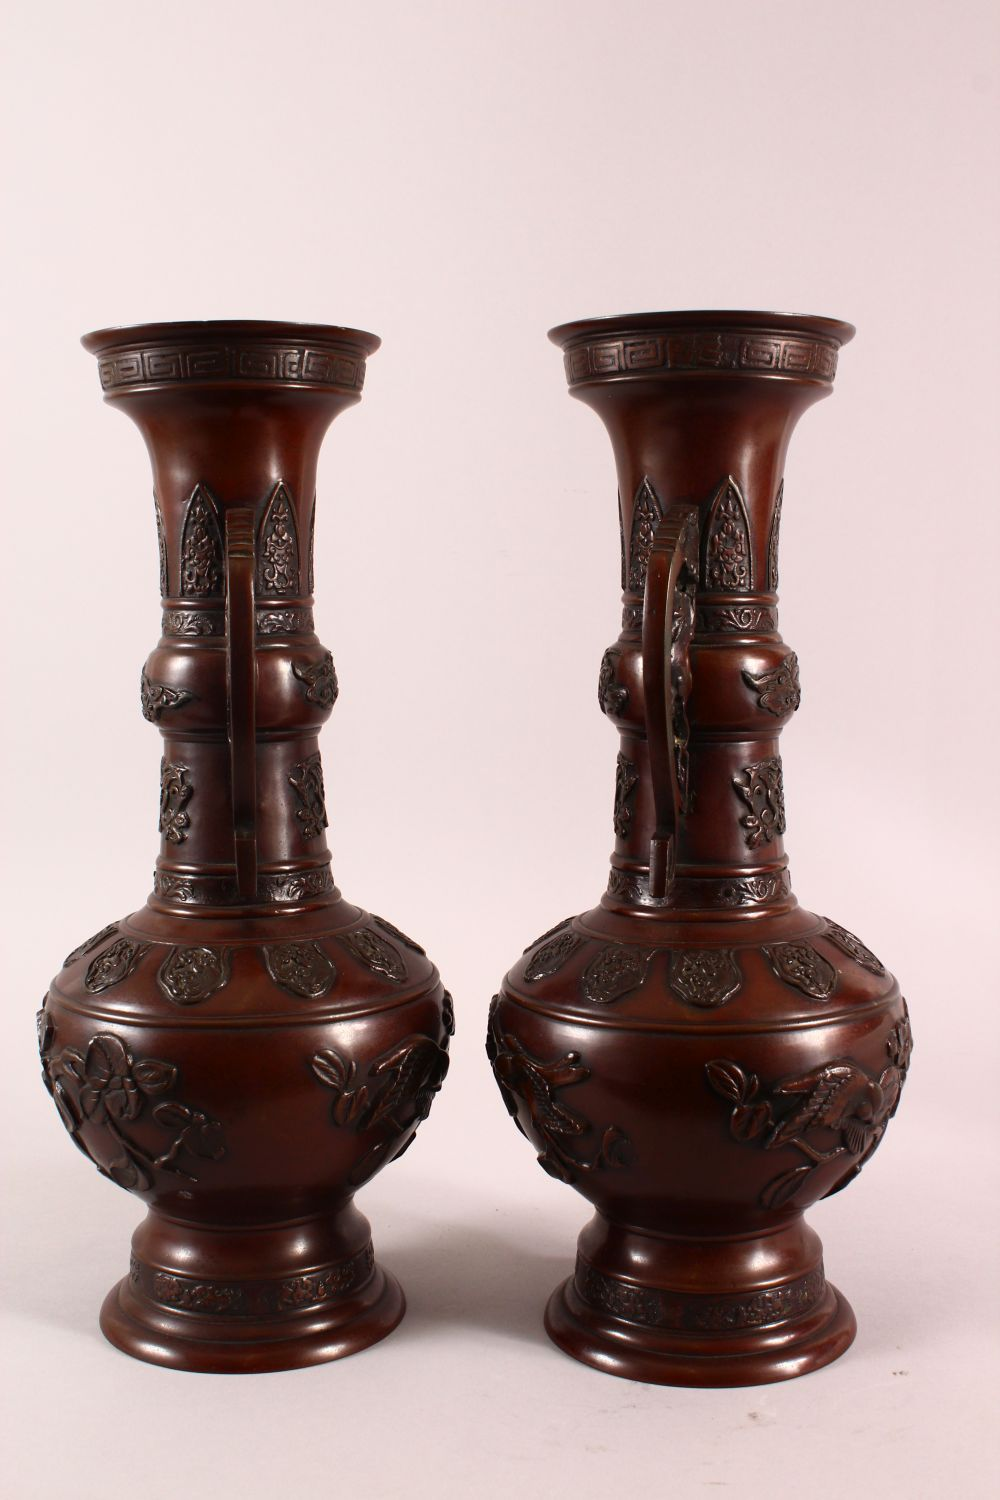 A PAIR OF JAPANESE RELIEF BRONZE VASES, with twin handles, relief birds and flora decoration, 40cm - Image 4 of 7